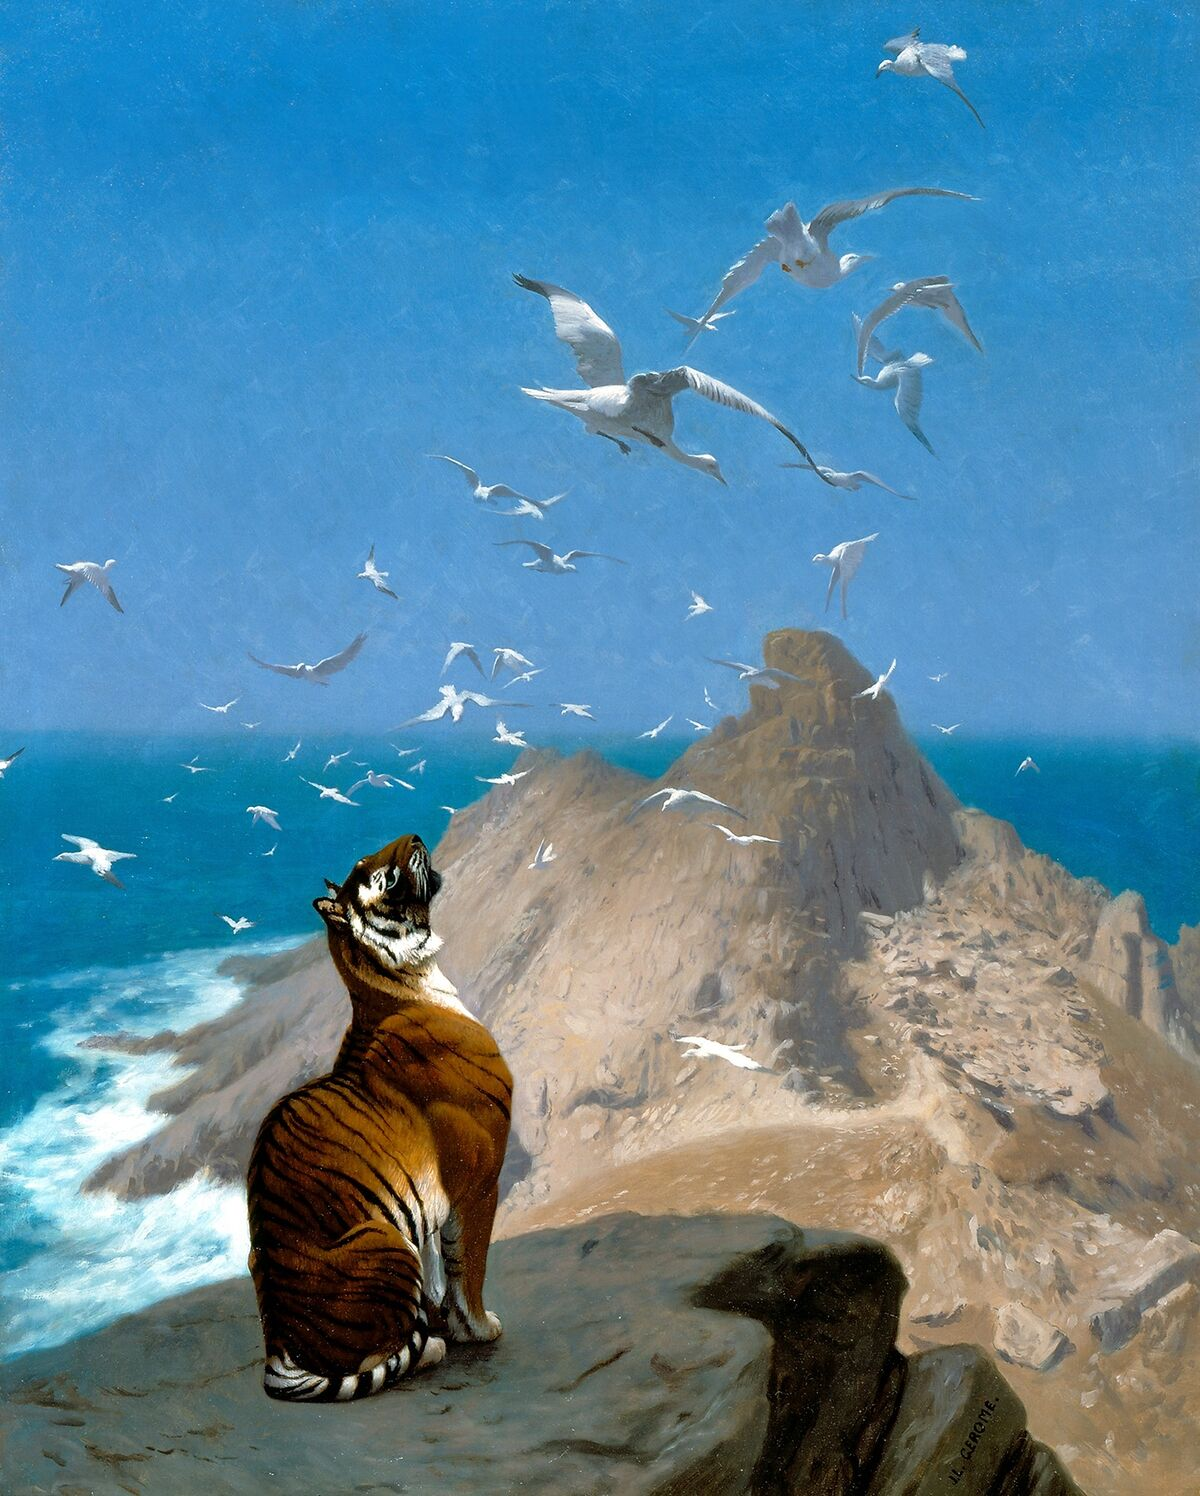 Jean-Leon Gerome, Tiger Observing Cranes, c. 1890. Courtesy of National Museum of Wildlife Art.